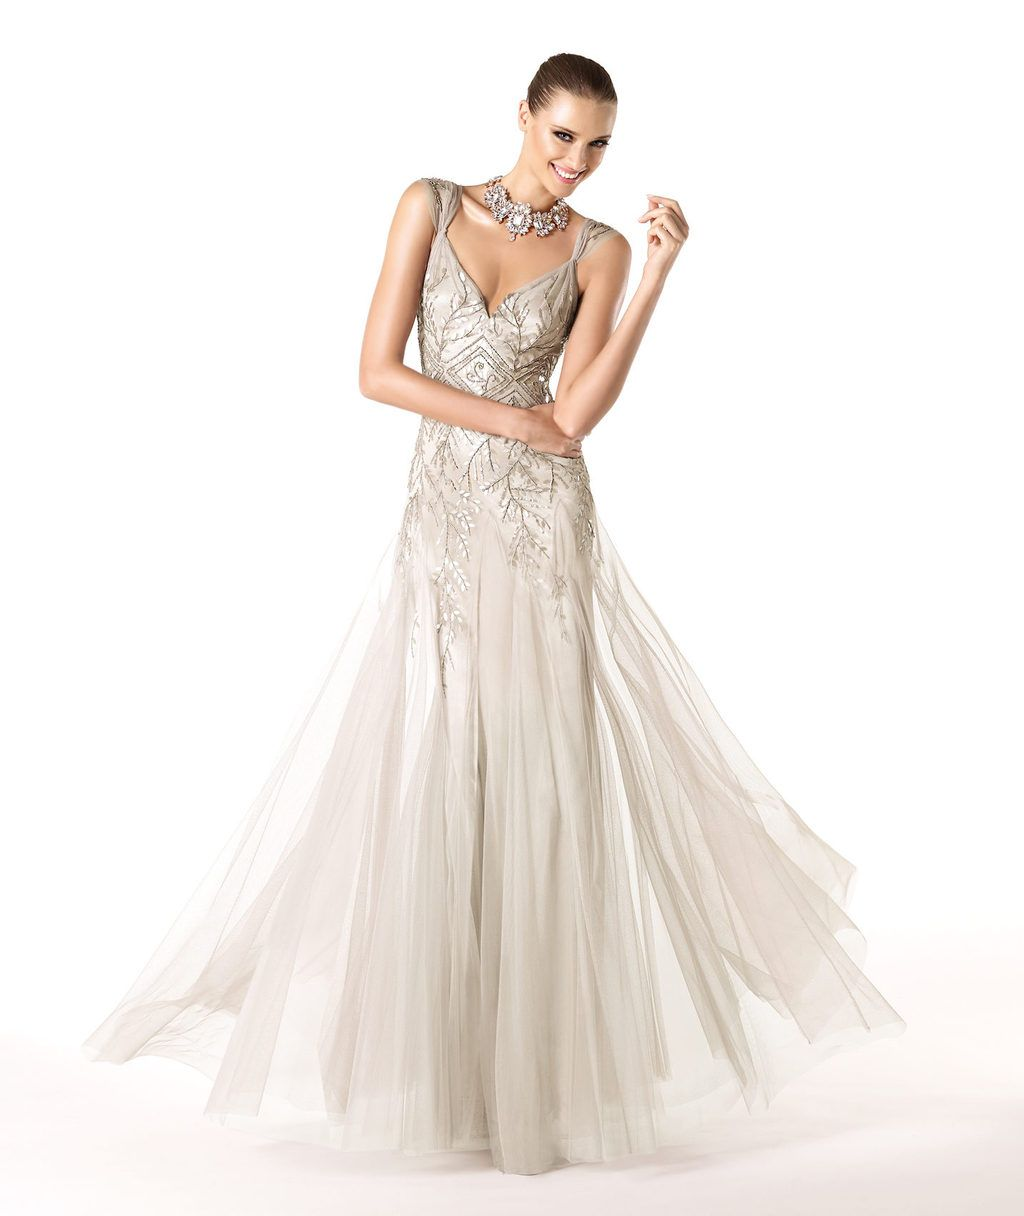 Champagne Sparkle Wedding Guest Dress By Ovias Full